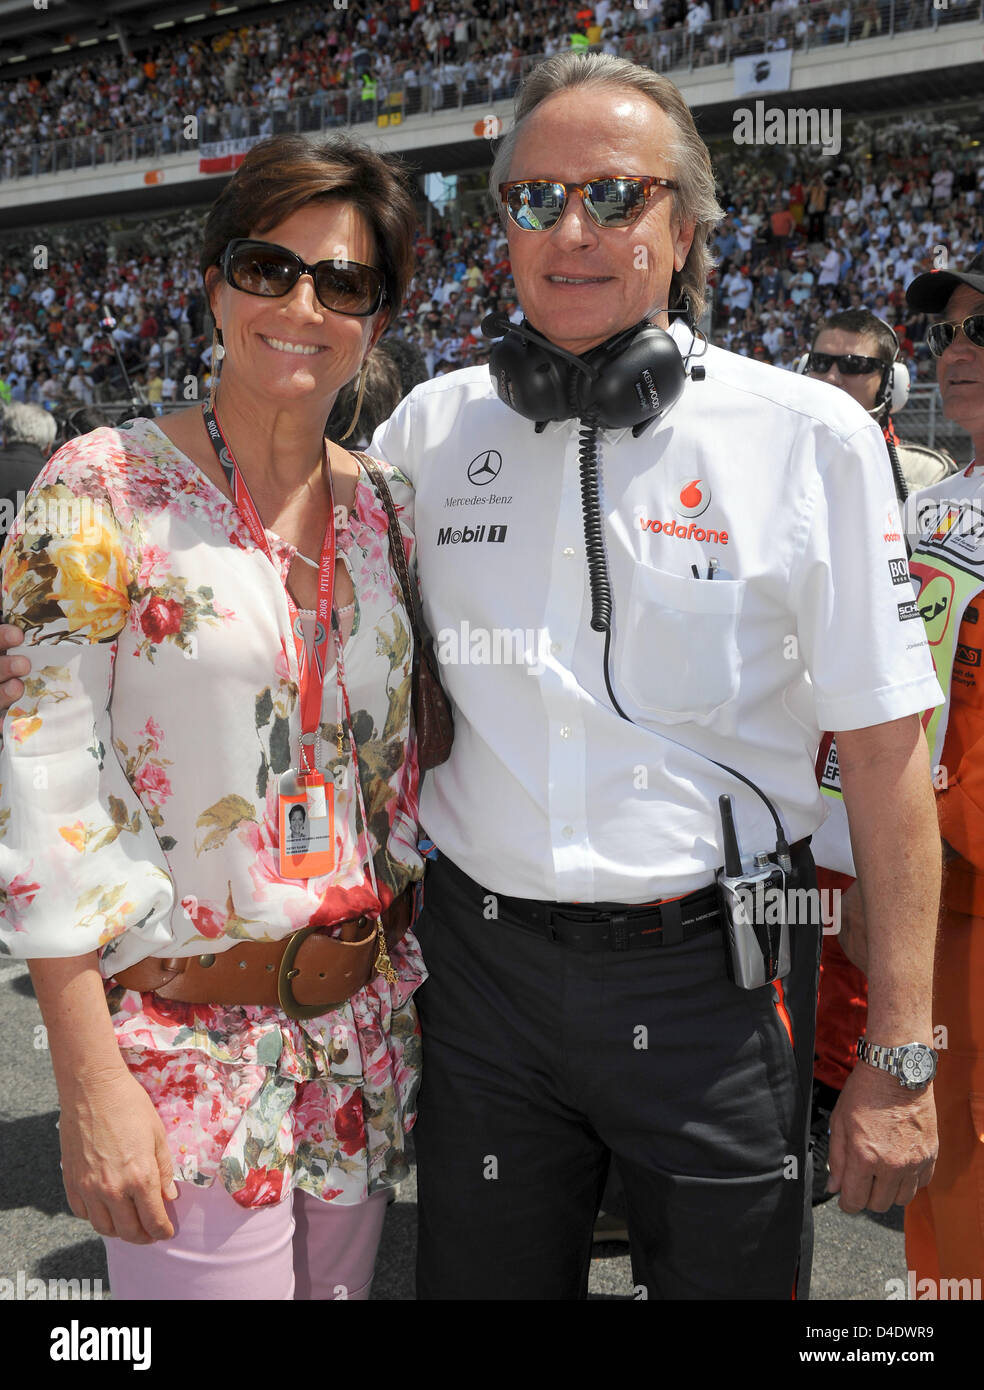 McLaren owner Mansour Ojjeh (R) and his wife Kathy pose before the